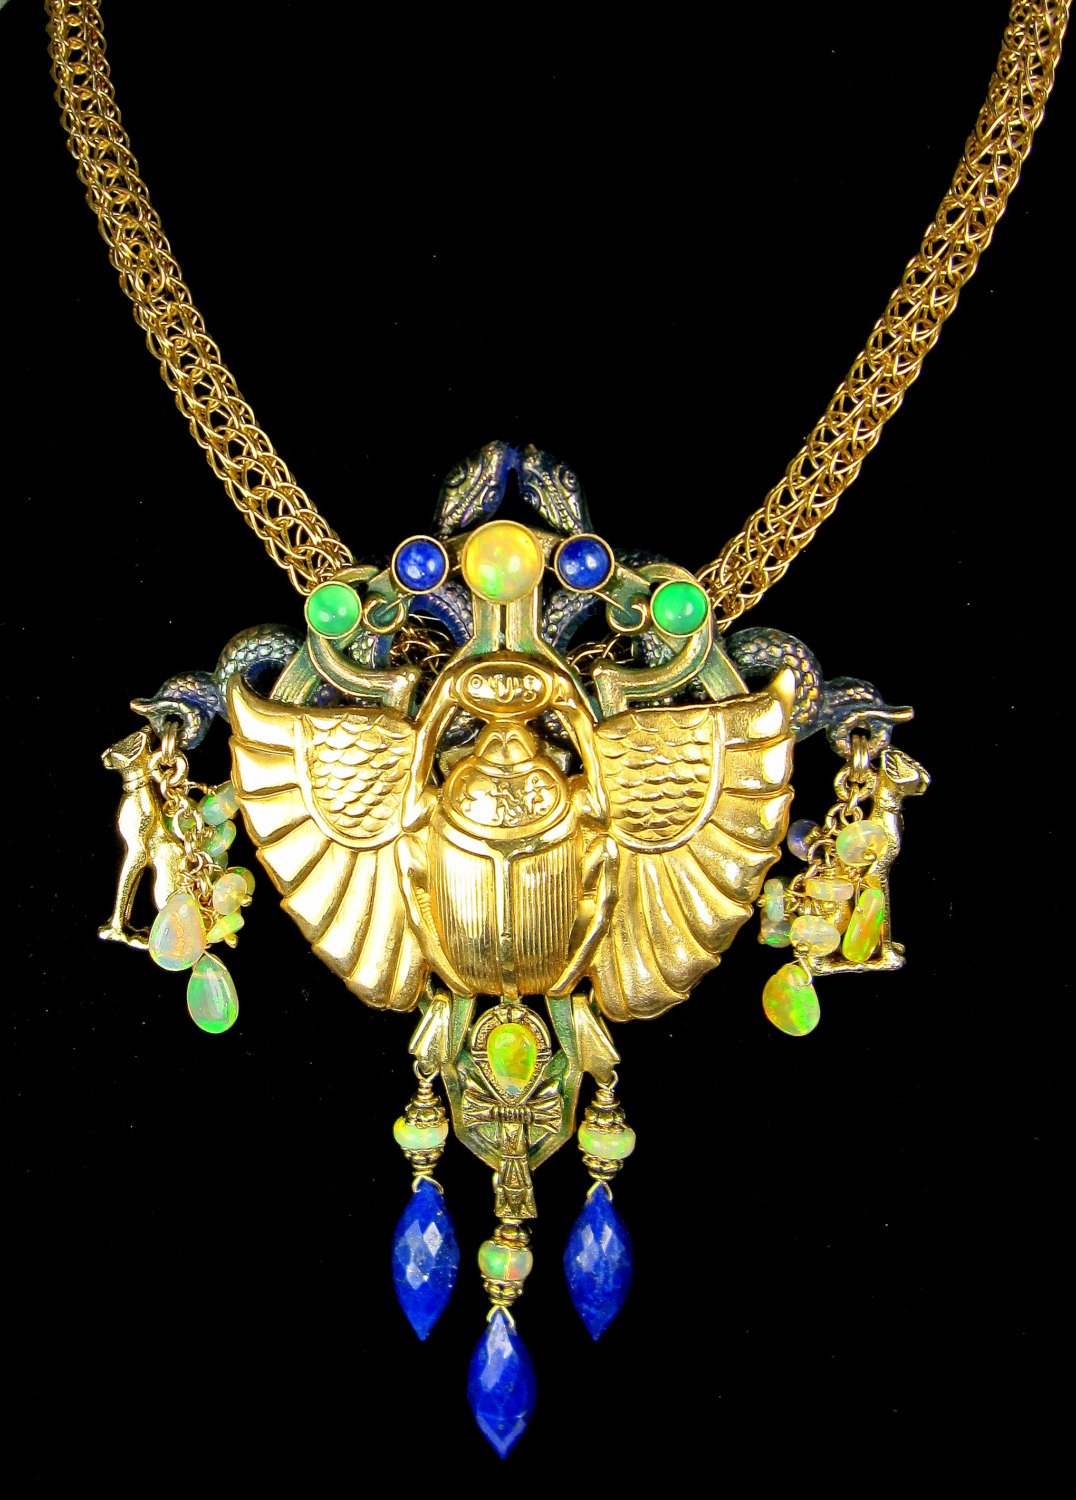 Ancient Egyptian Jewelry Wallpapers High Quality Download Free